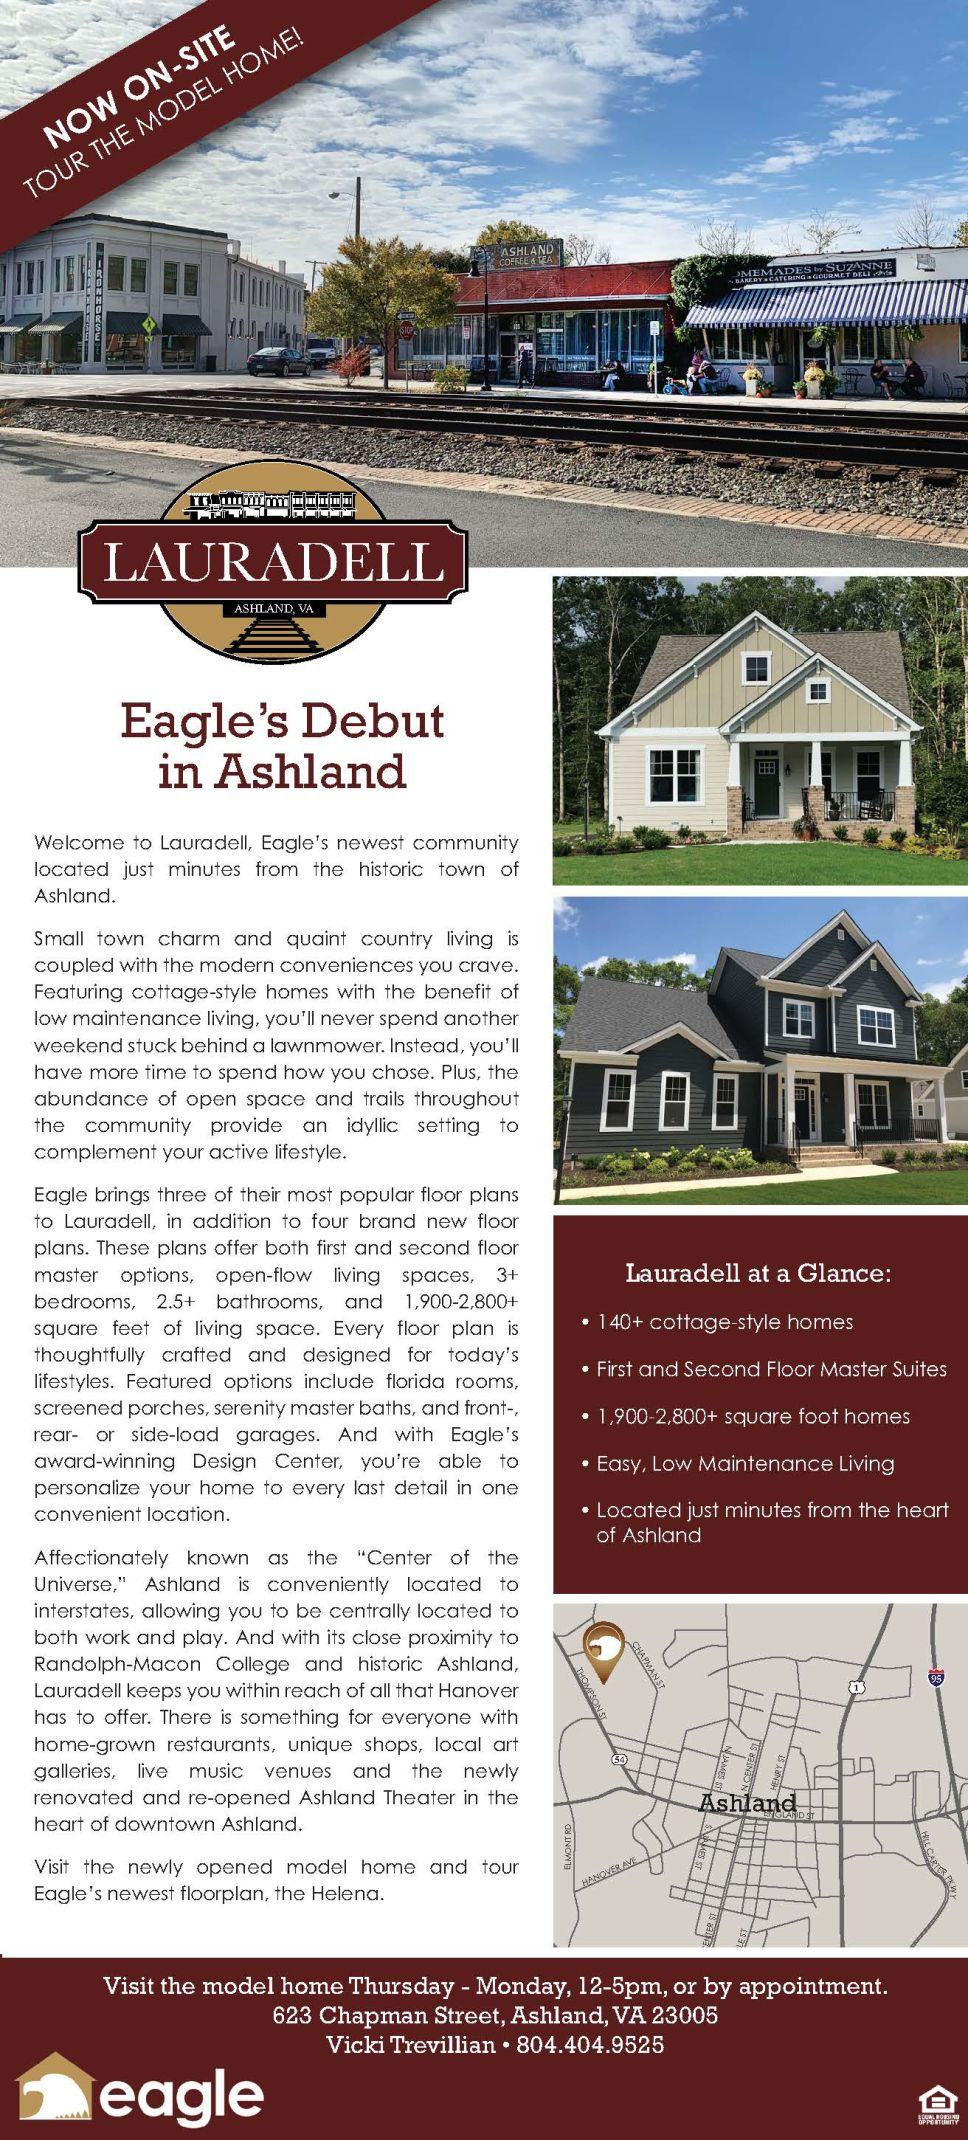 Lauradell: Eagle's debut in Ashland 01